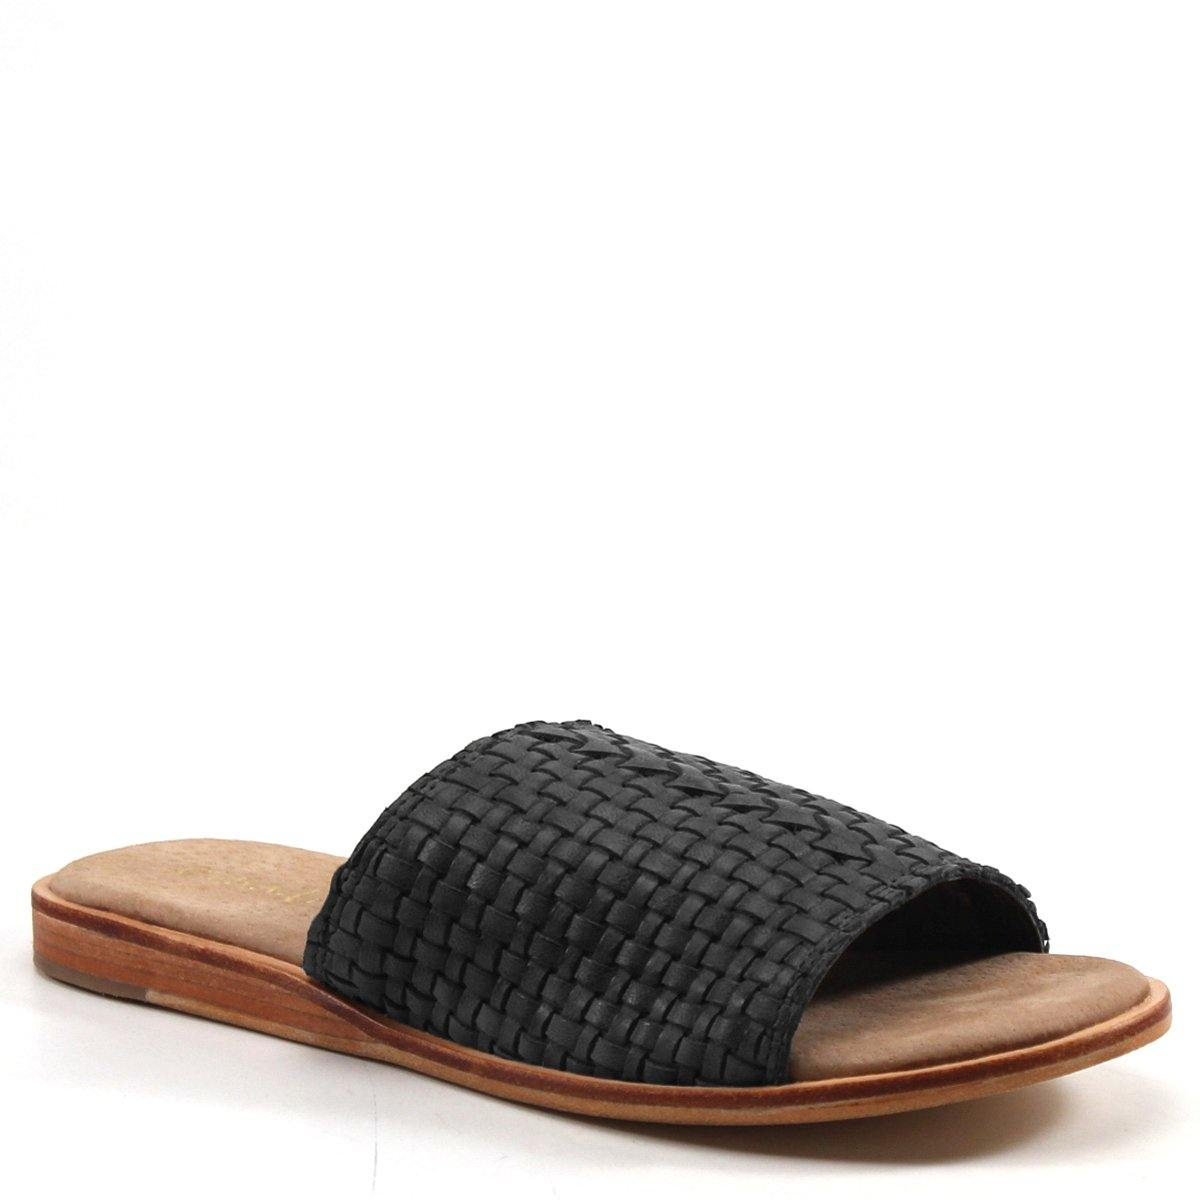 Slip into elegance and comfort with the JUMP UP slide sandals. Including a trendy woven leather upper, padded insole, and barely-there .5 inch heel, these shoes are the epitome of easy, breezy style.